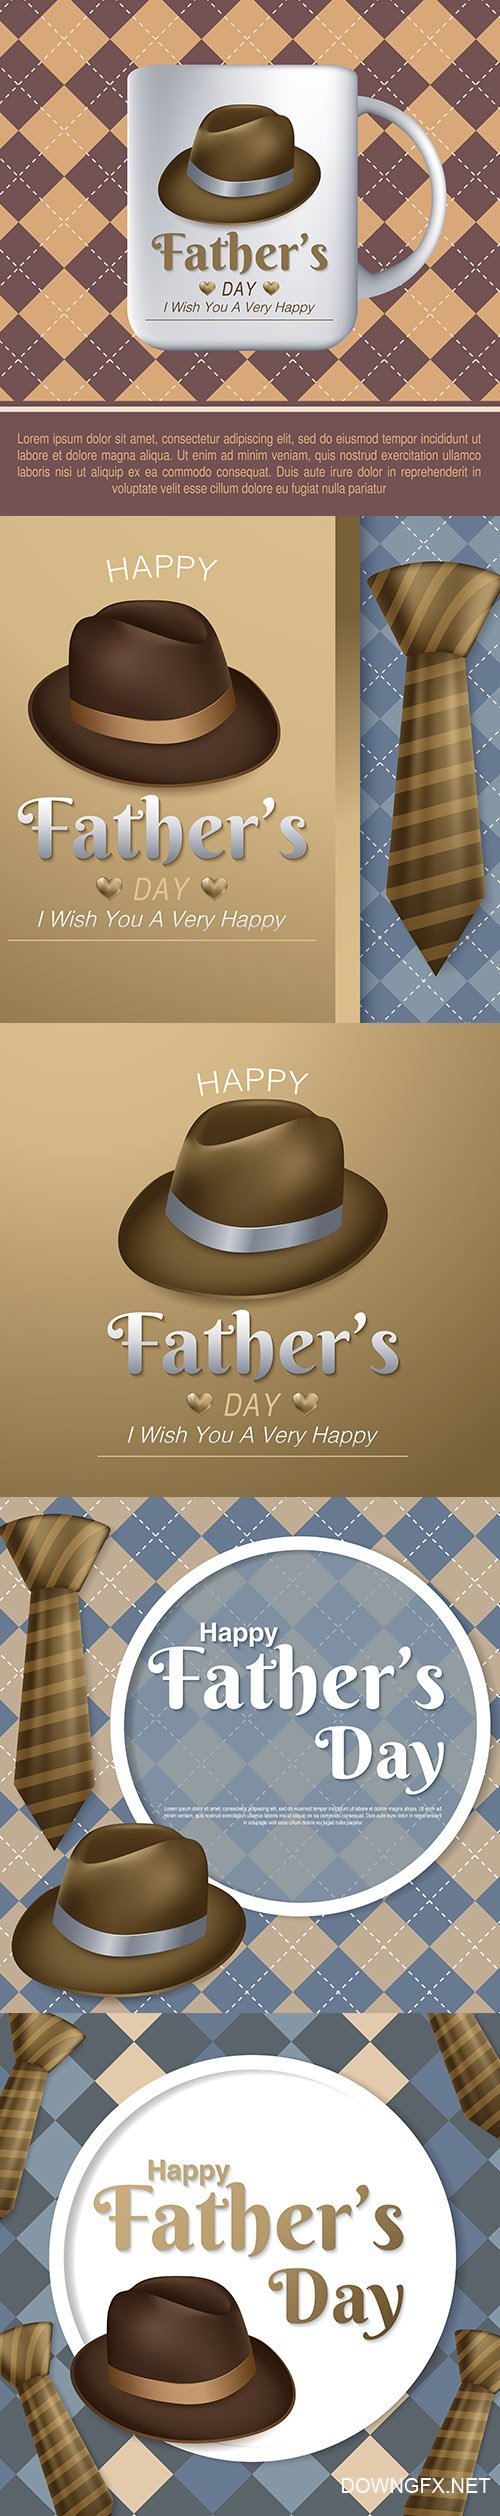 Happy Fathers Day Greeting Card Set